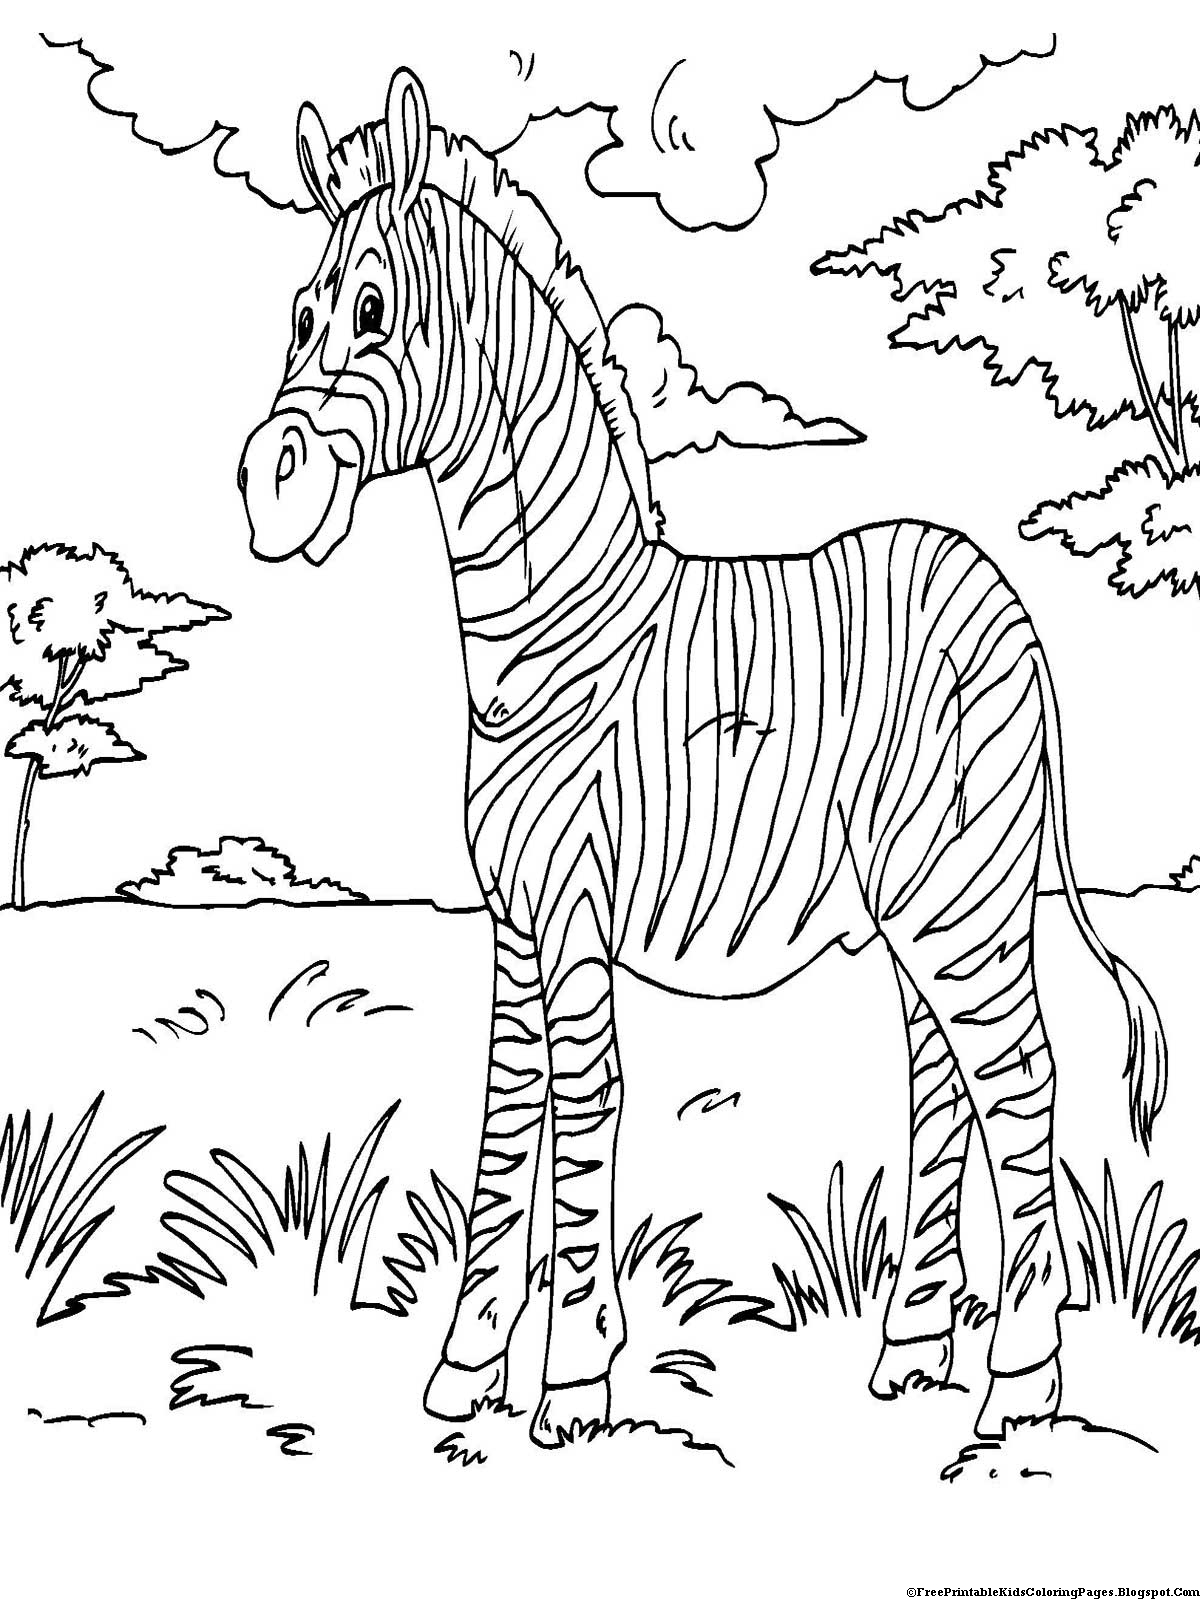 zebra print coloring pages zebra coloring pages to download and print for free pages print zebra coloring